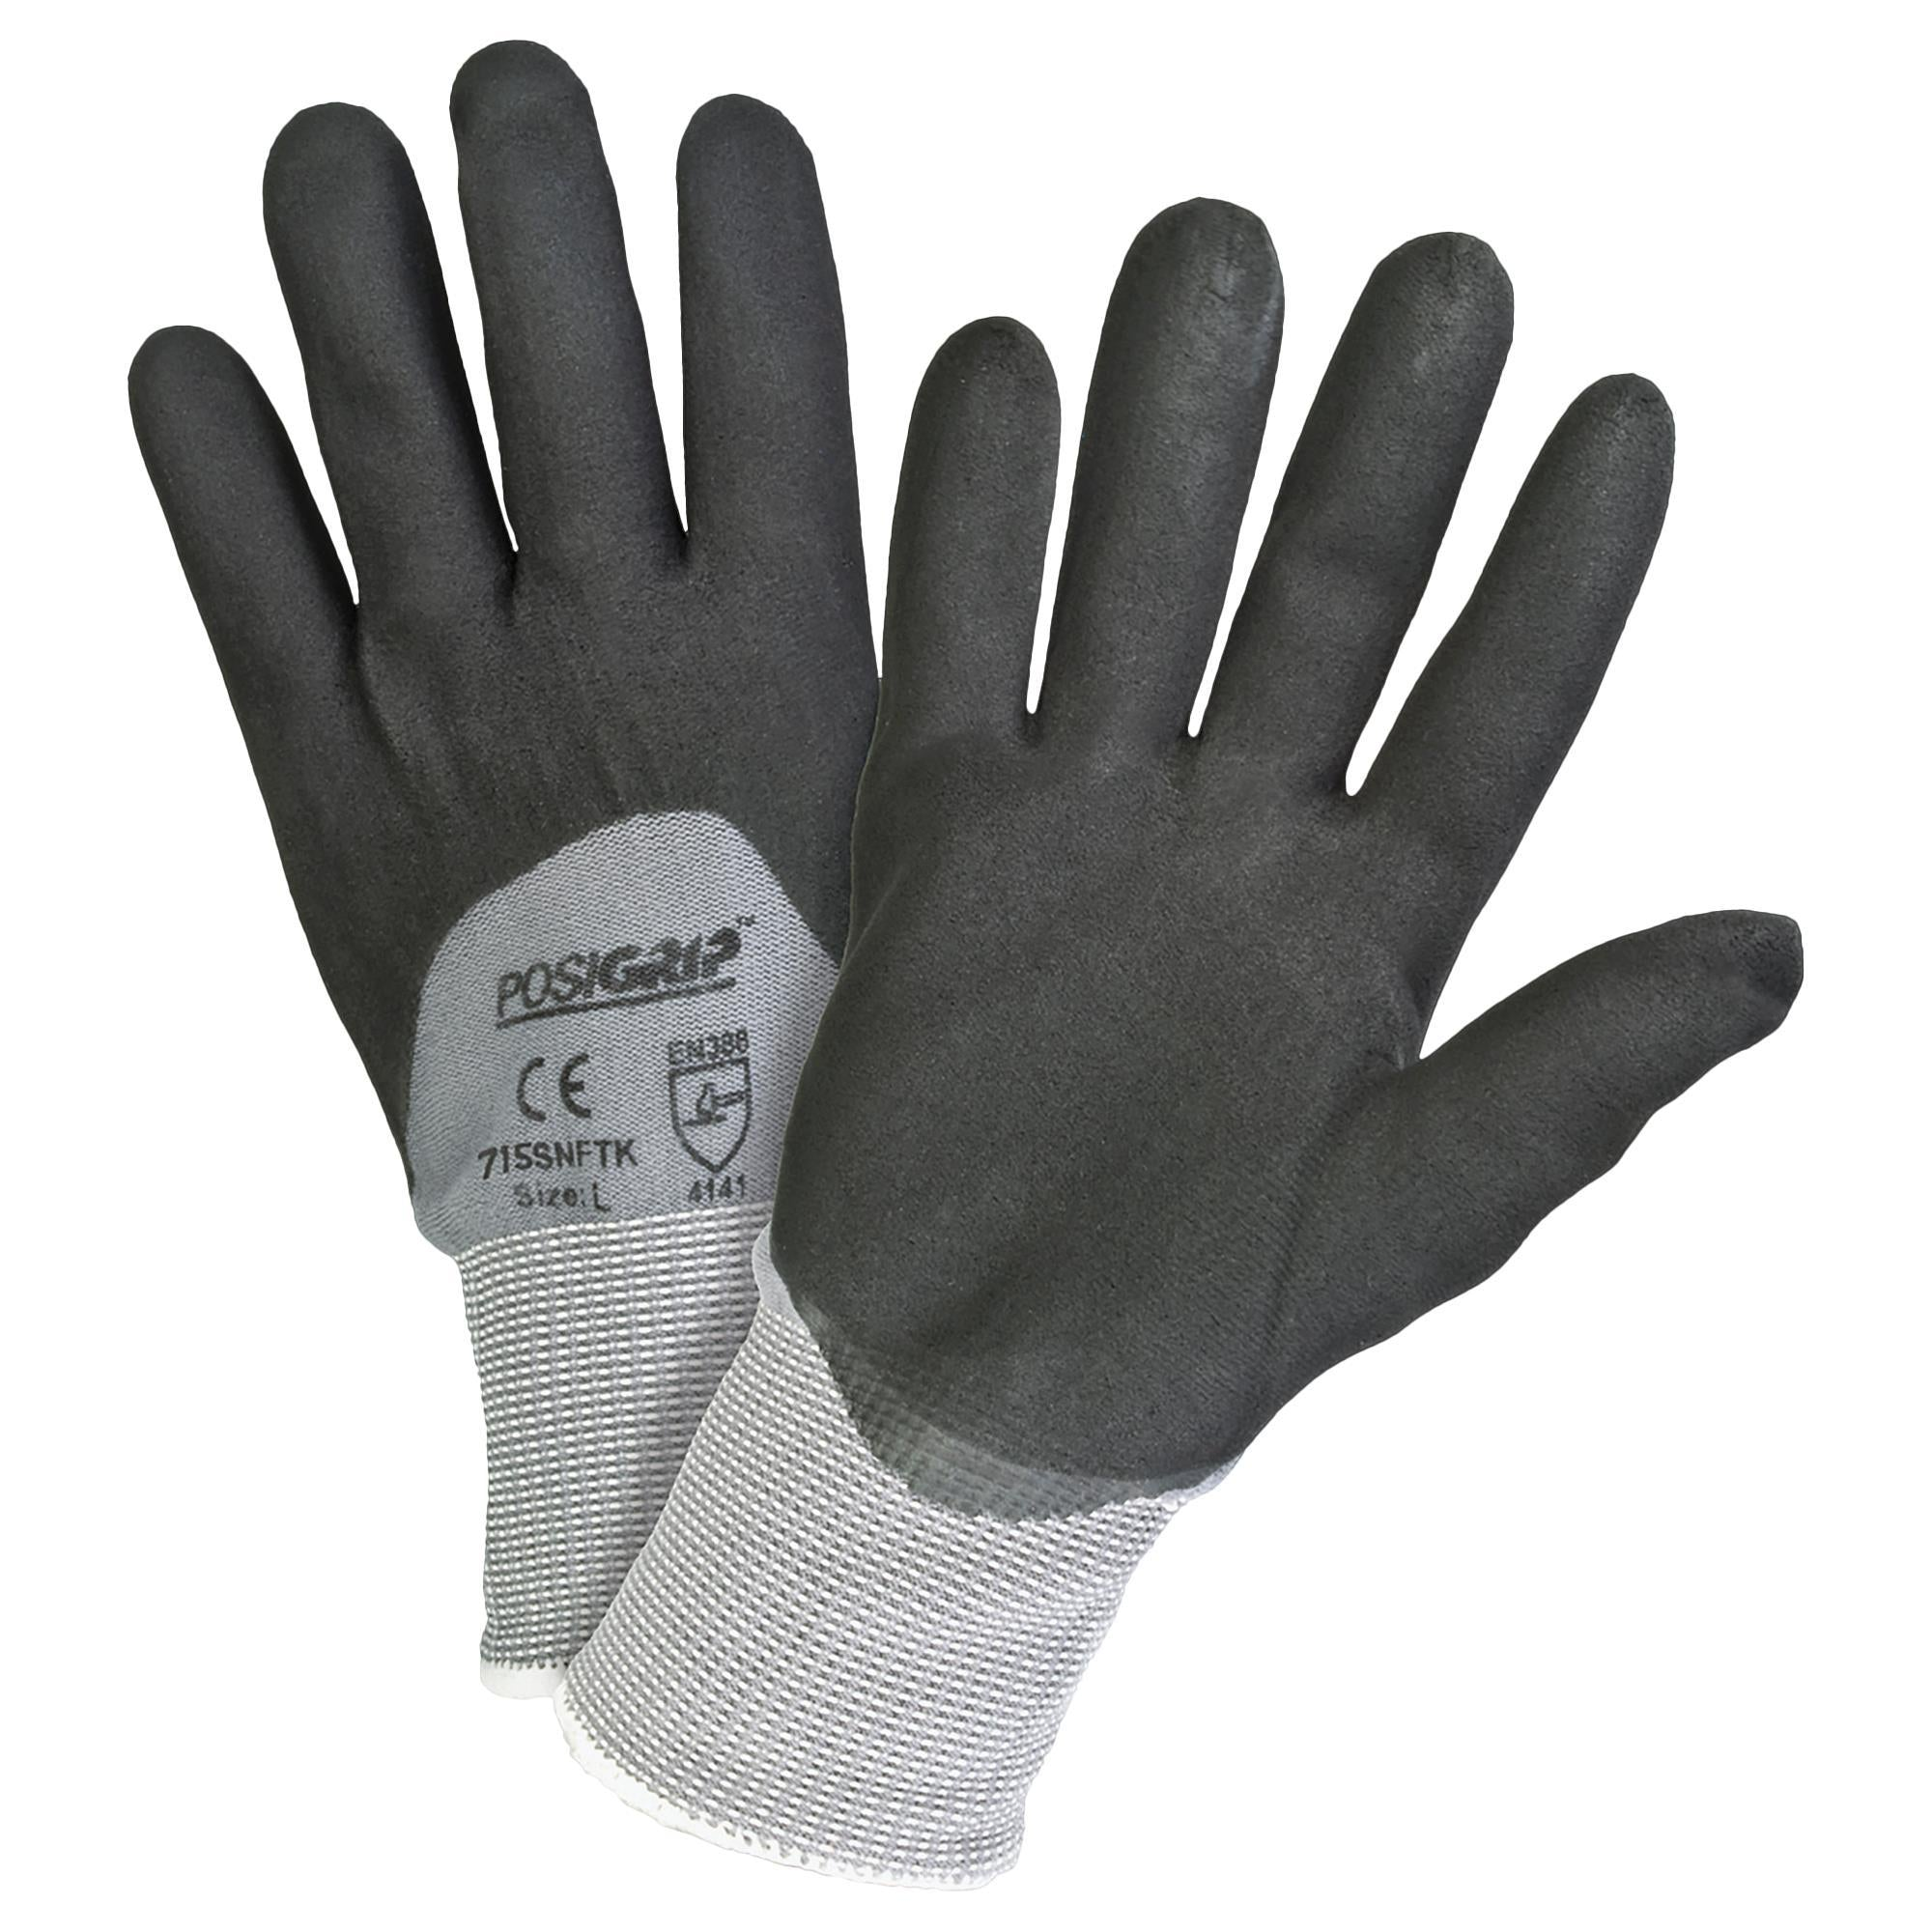 3/4 Dipped Gloves with Micro-Foam Air Coating 1pair